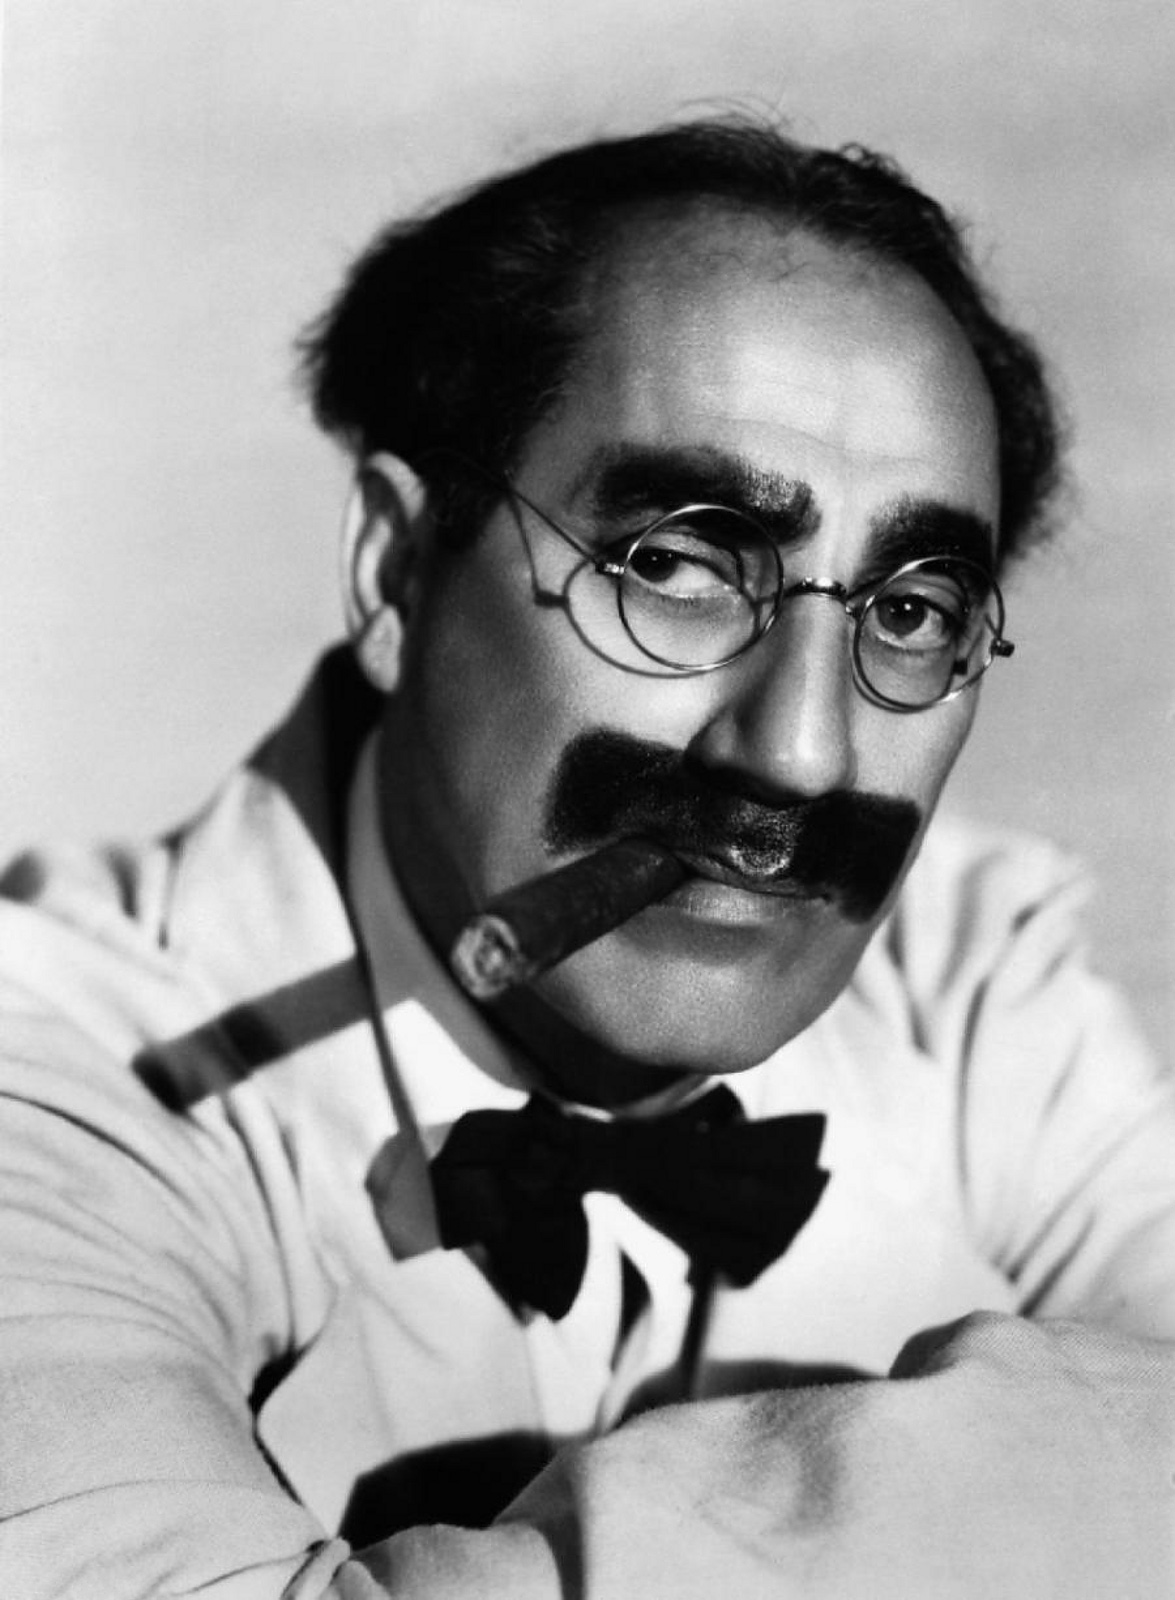 how tall is groucho marx